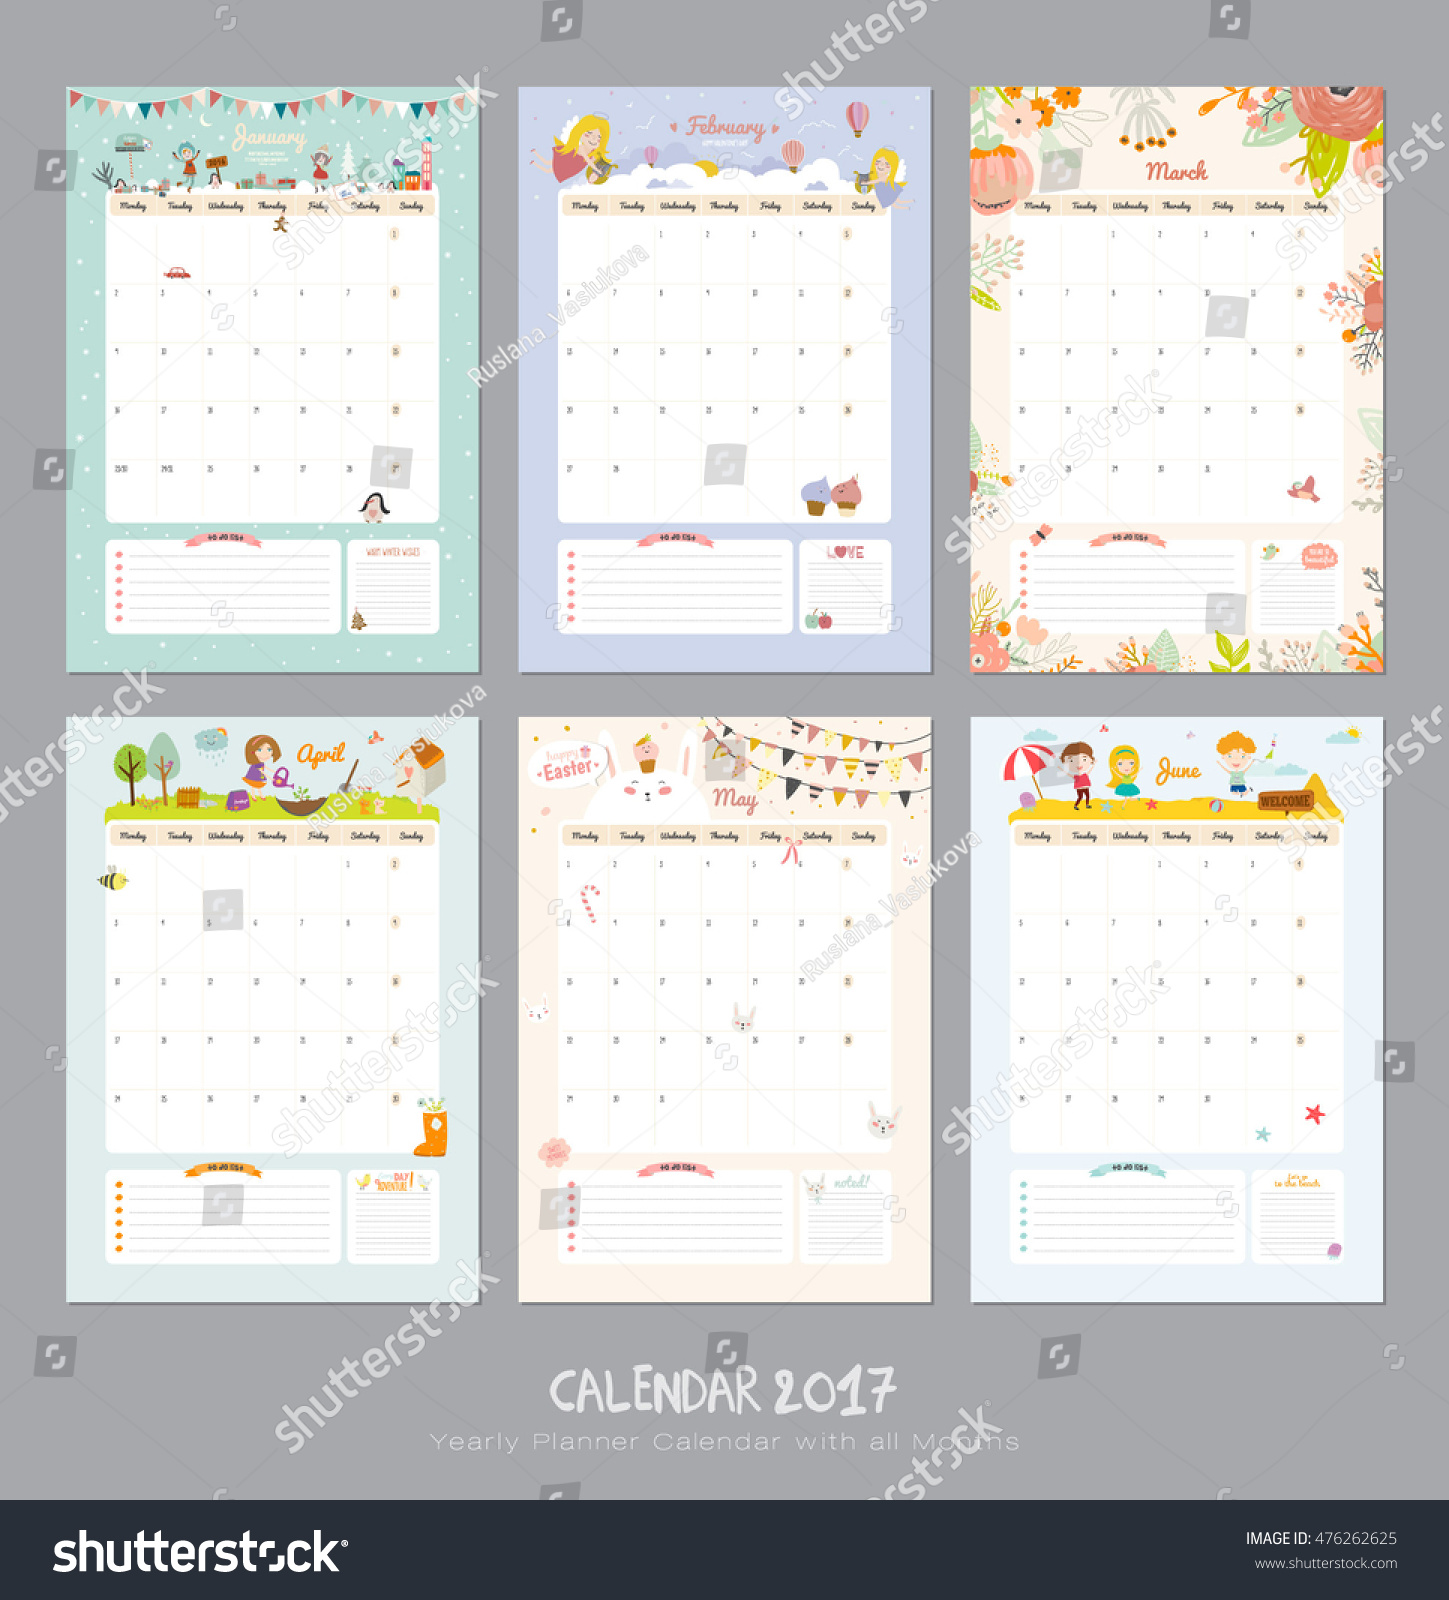 Cute Calendar Template 2017 Yearly Planner Stock-Vektorgrafik ...